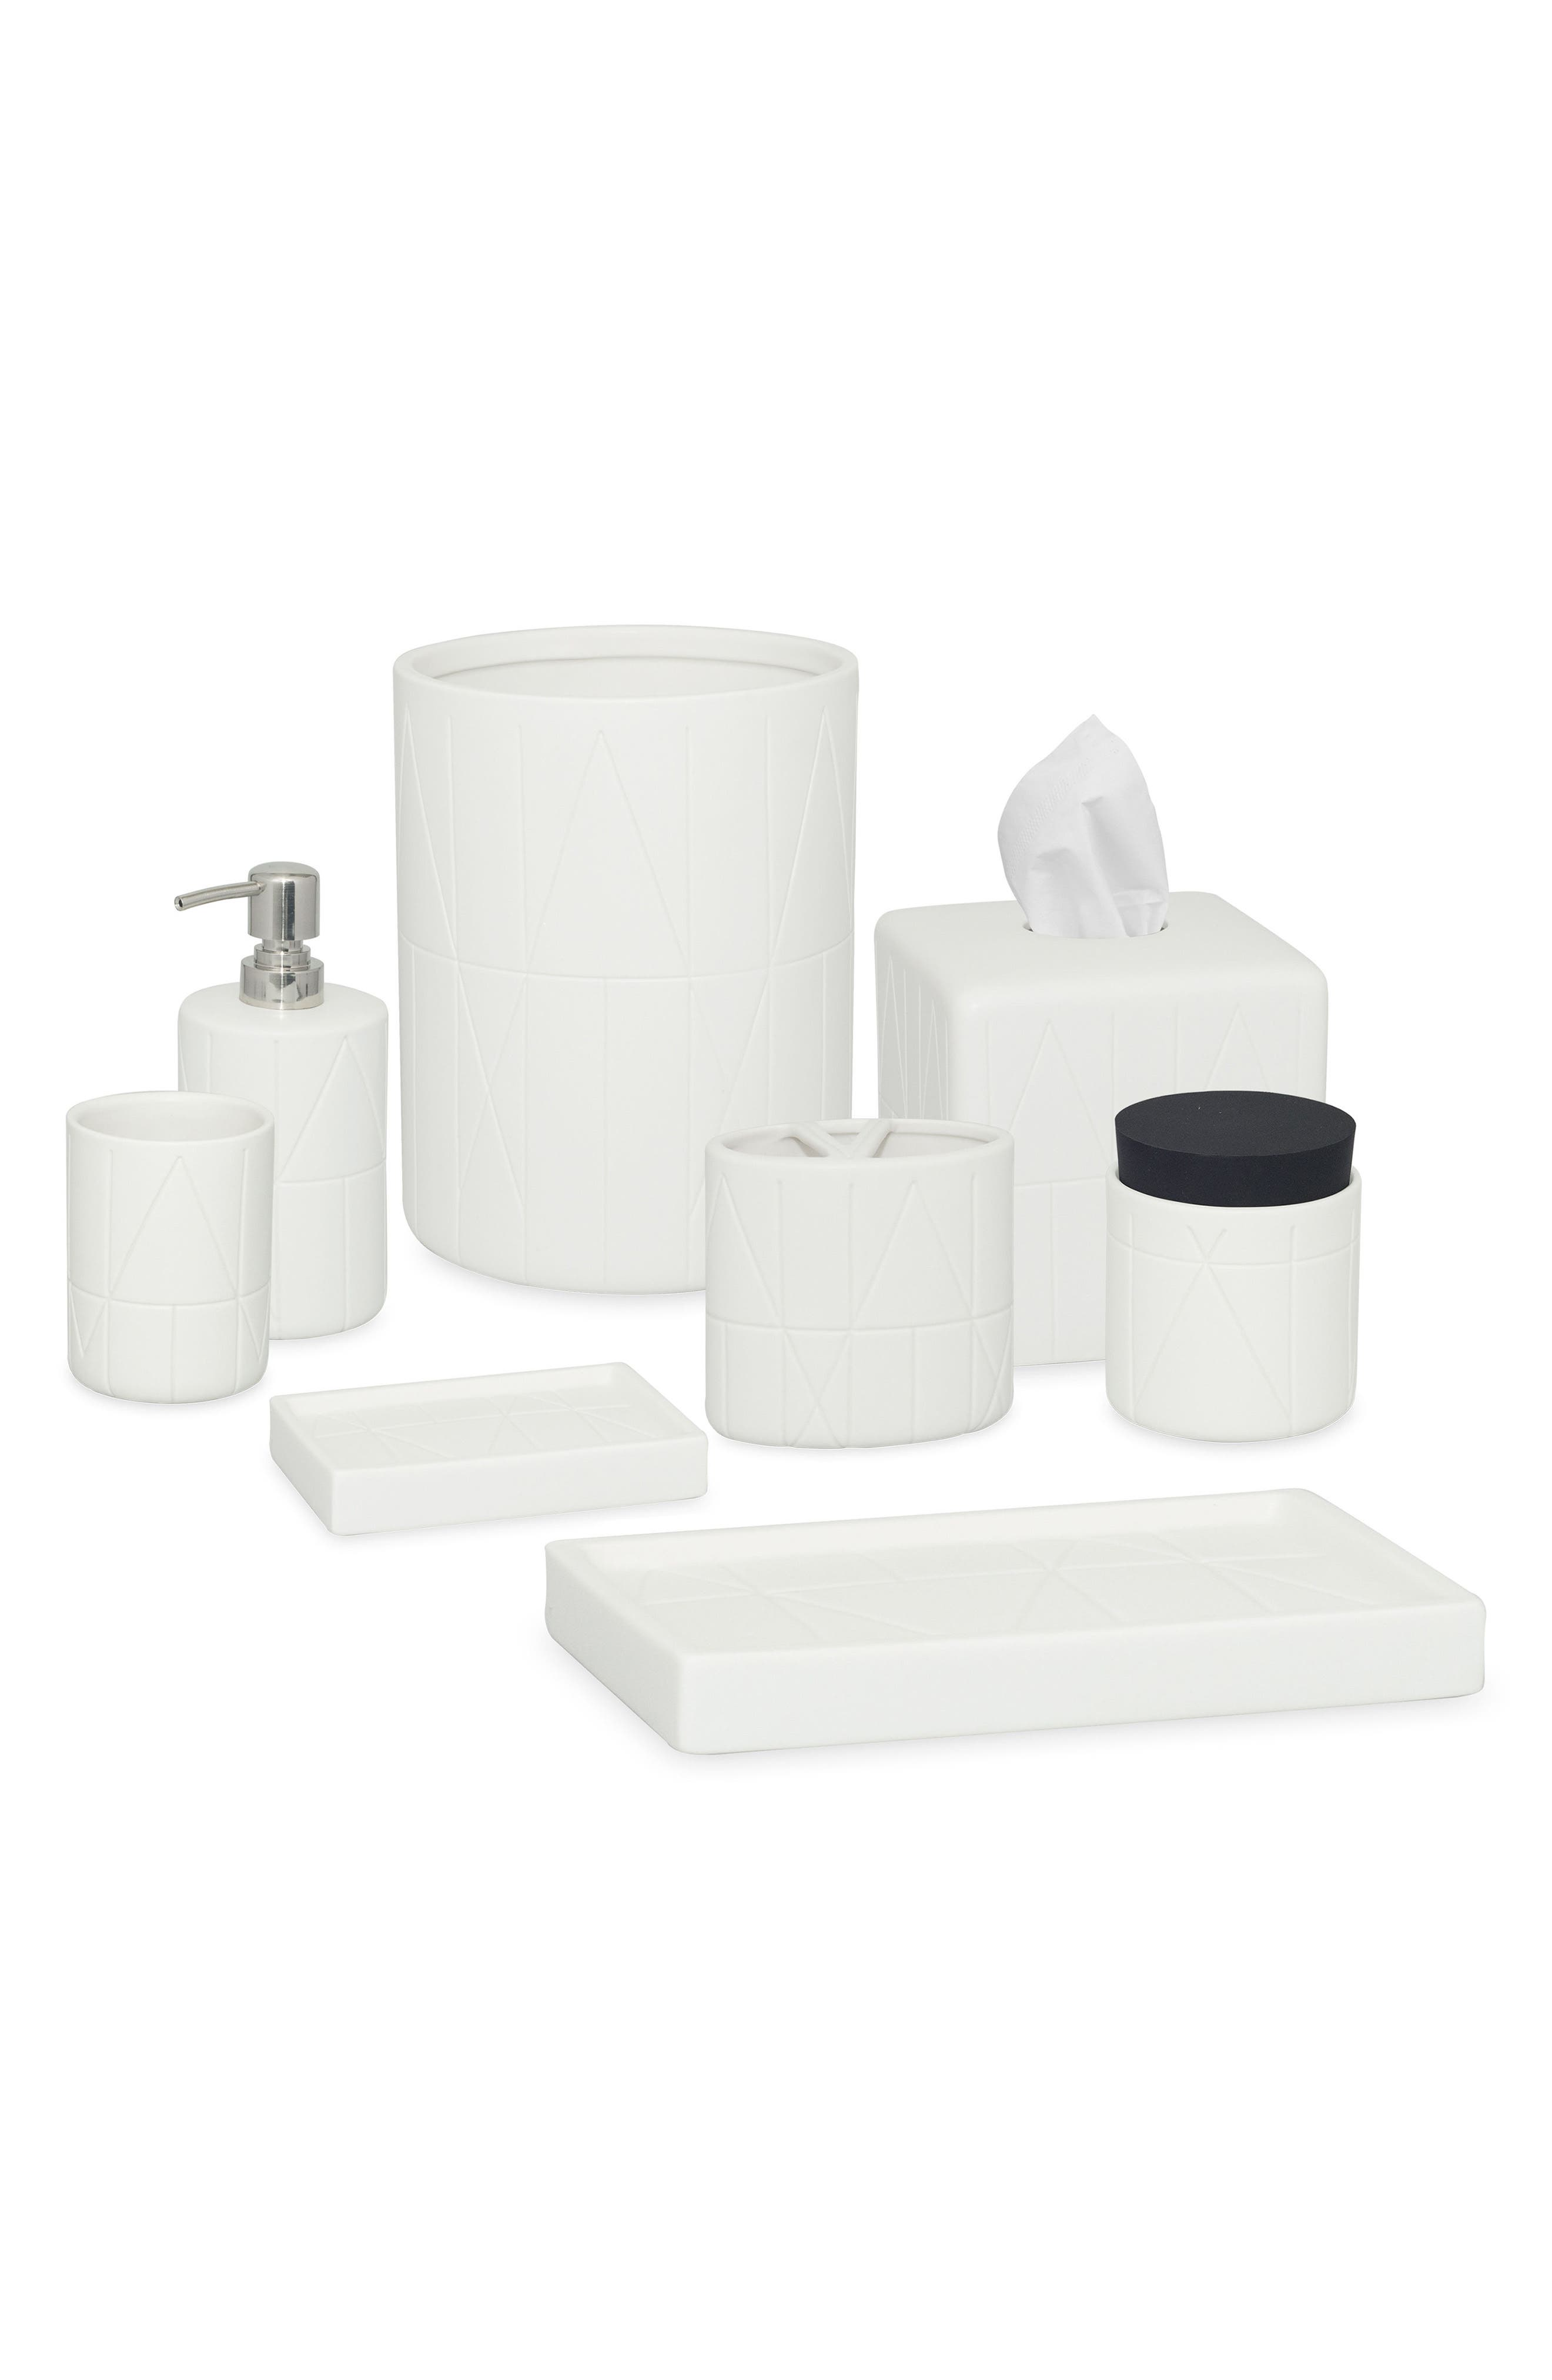 DKNY Bath & Shower Accessories   Nordstrom